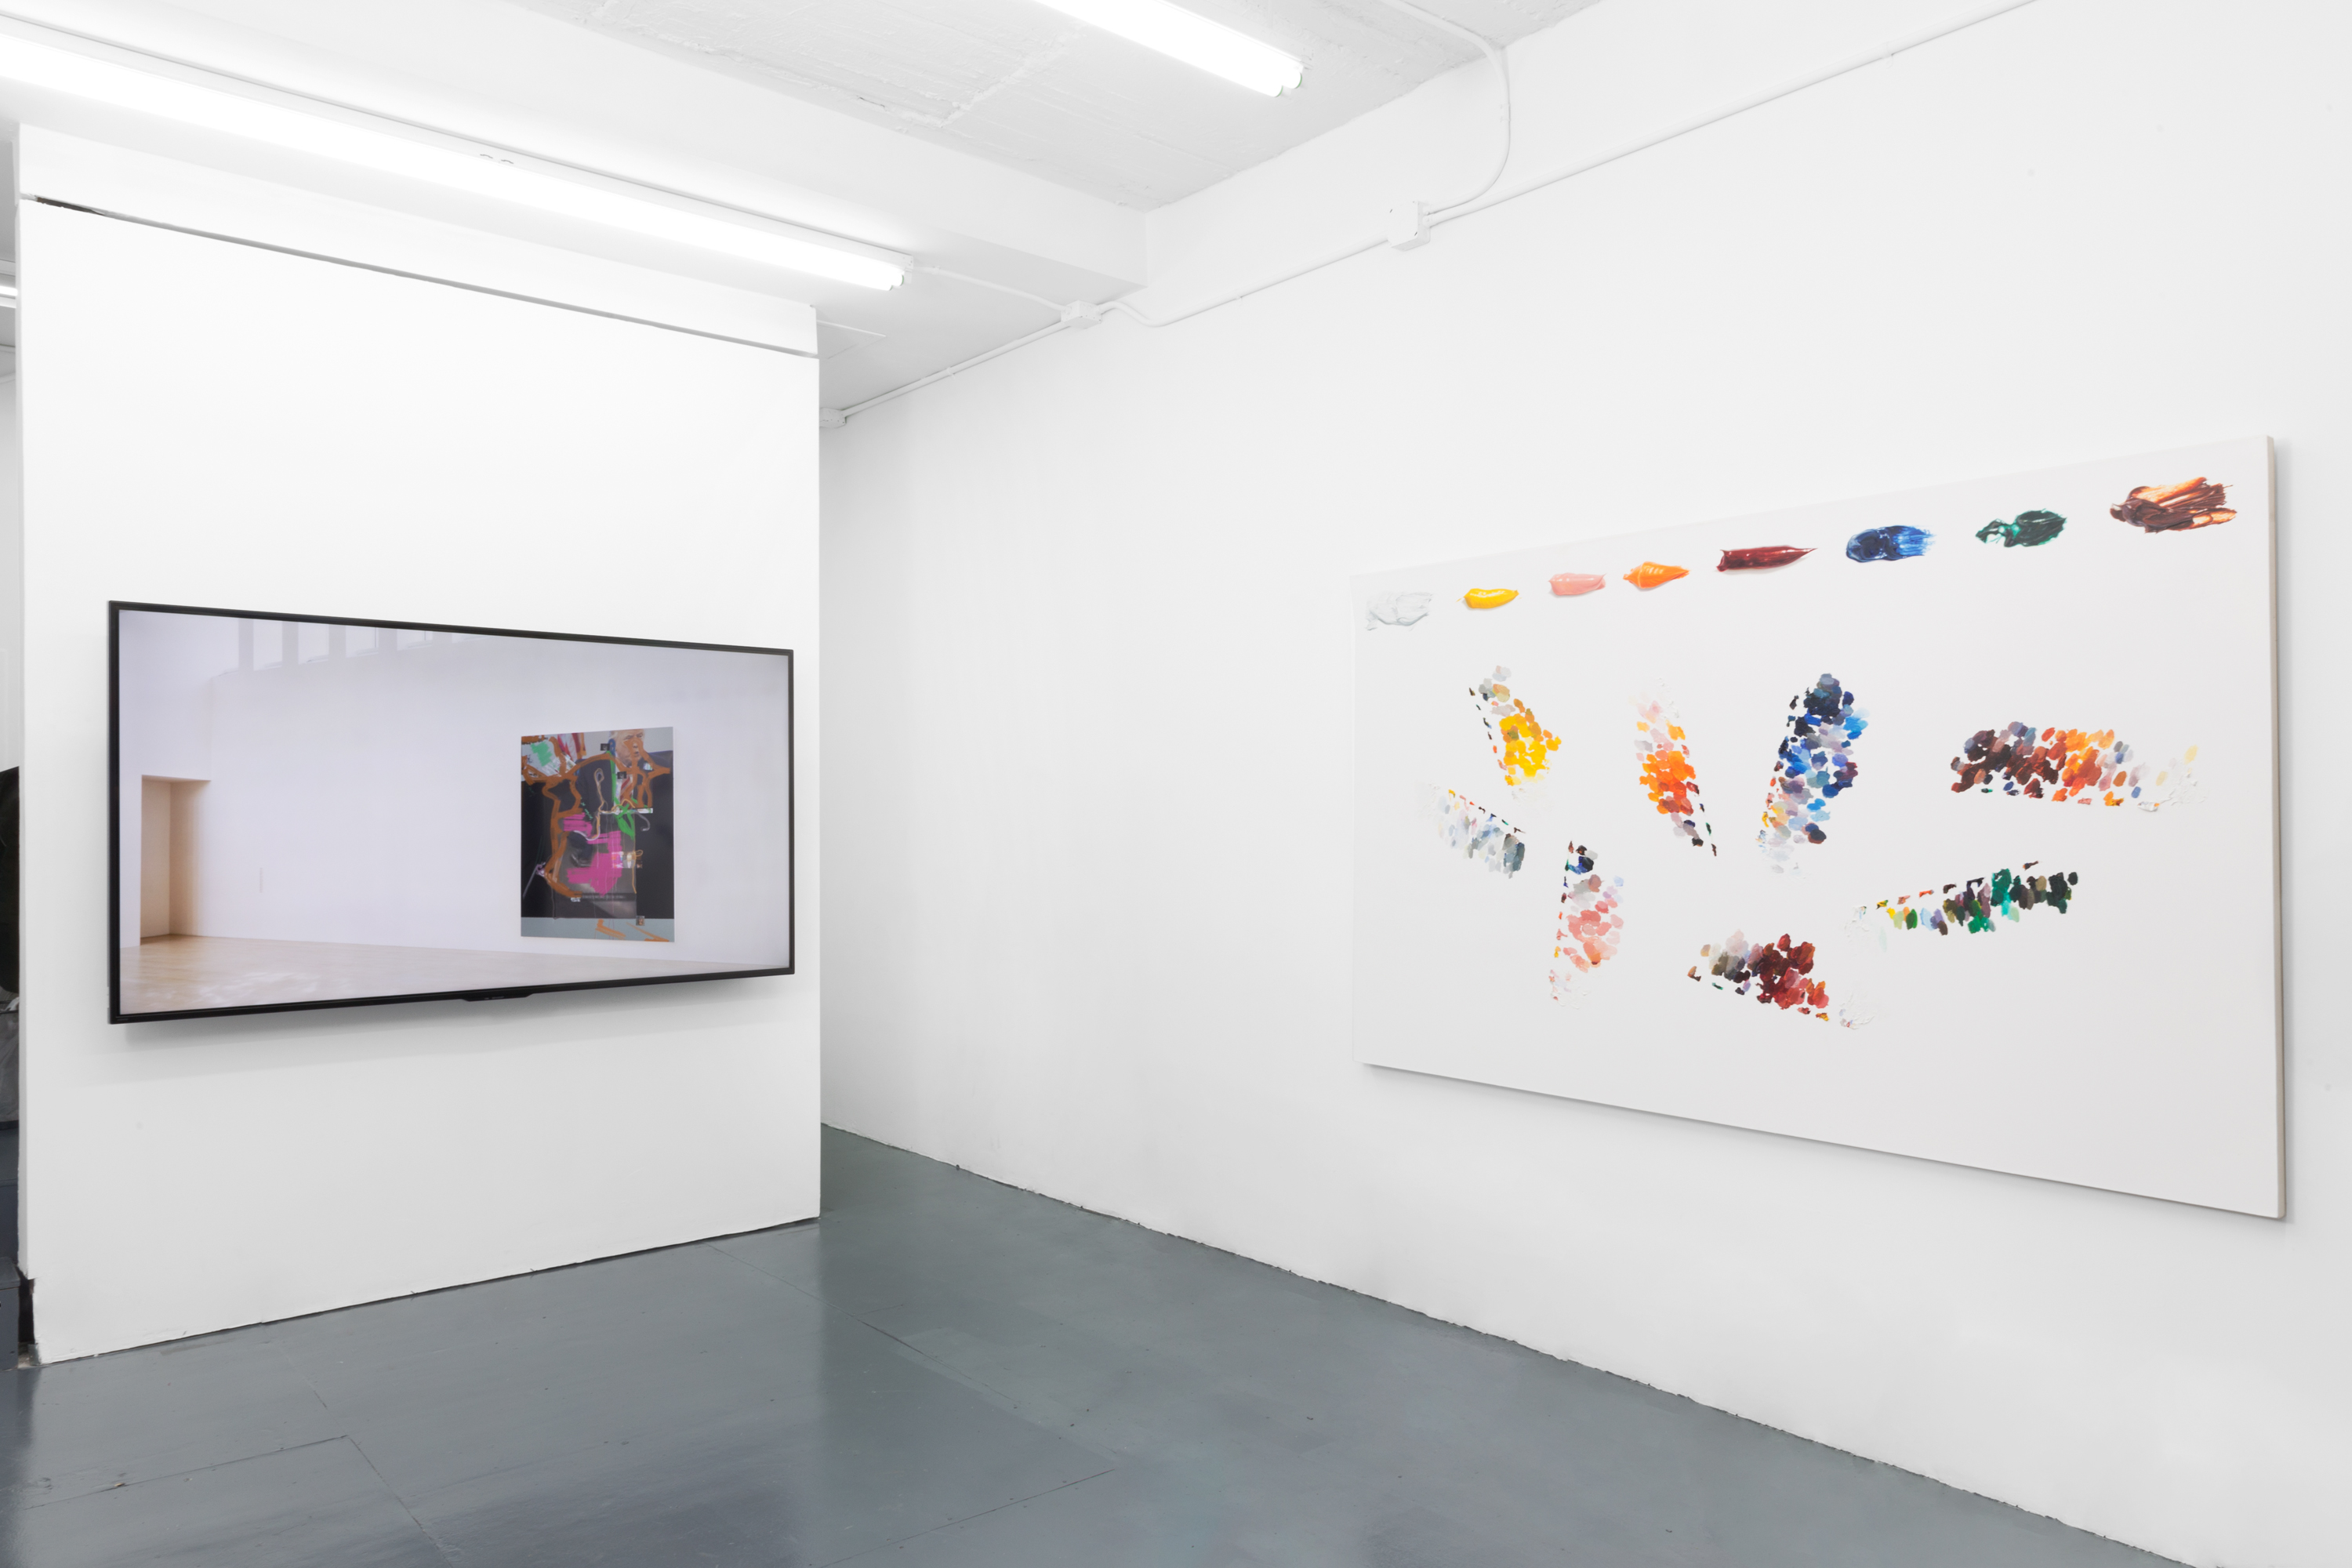 <em>Ekphrasis</em>, Conor Backman, Cynthia Daignault with Matt Hansel, & Siebren Versteeg (Installation view)